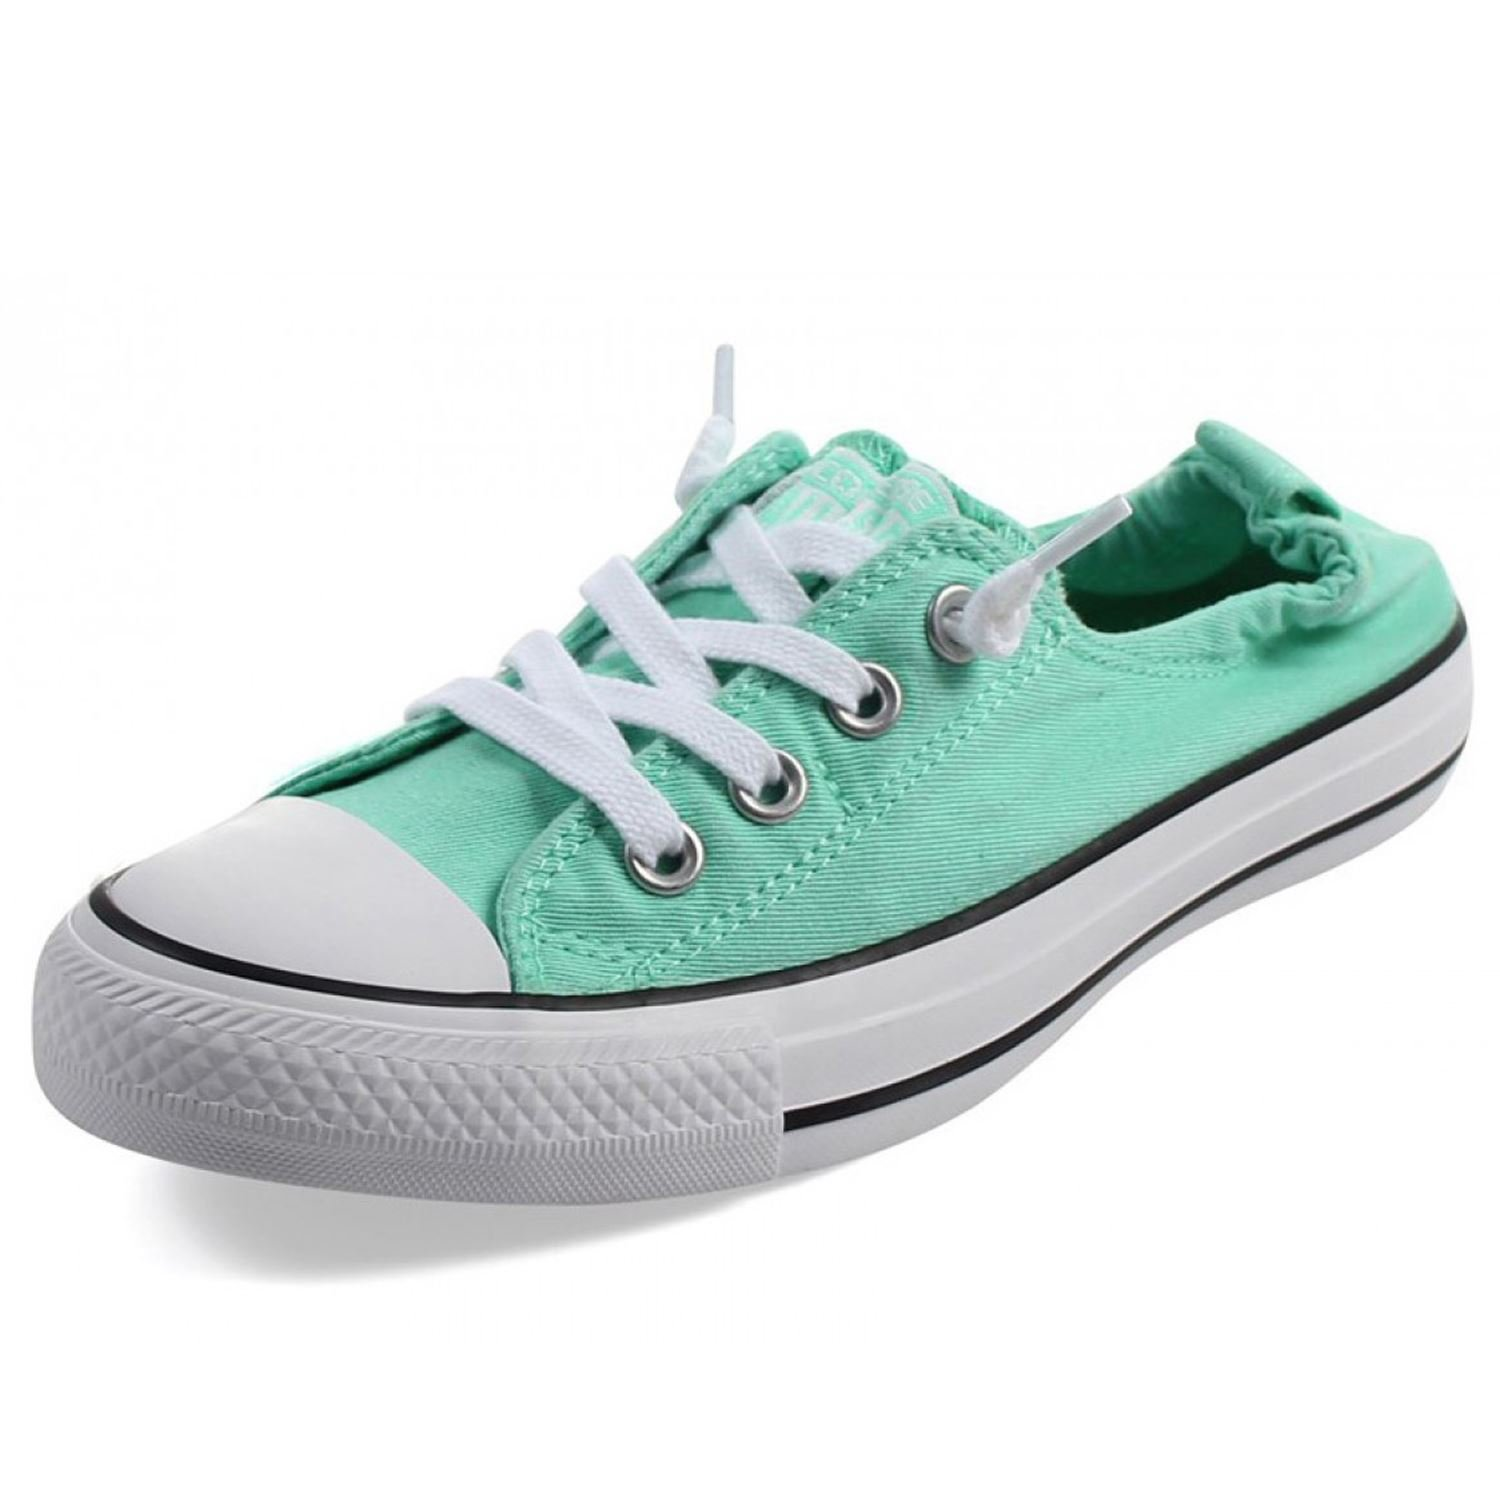 34f7b3c9489f82 Galleon - Converse Chuck Taylor All Star Shoreline Green Glow White Black  Lace-Up Sneaker - 9.5 B(M) US